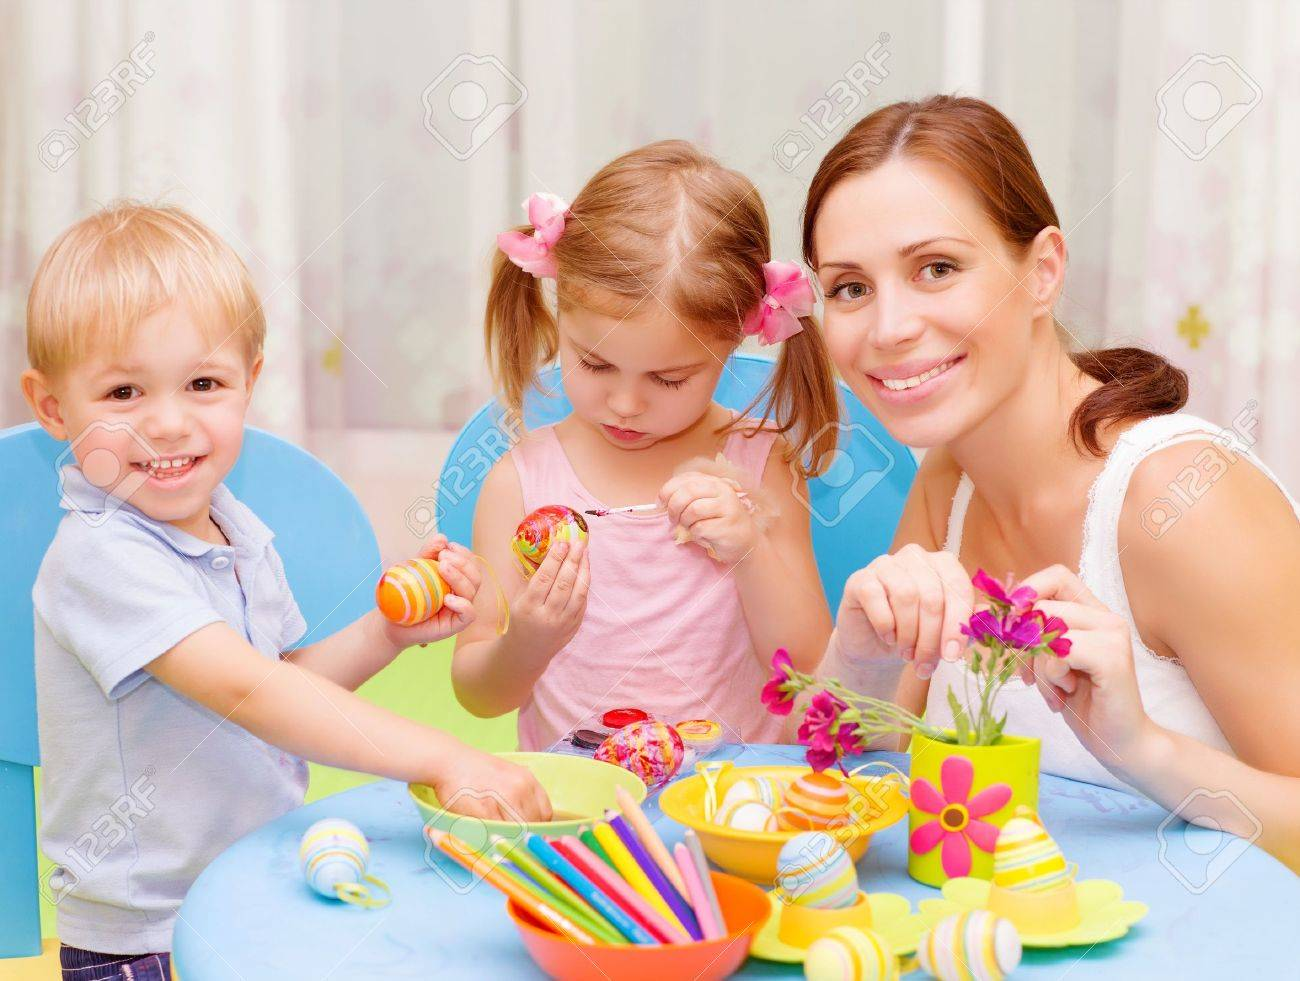 Two sweet toddler with young drawing teacher paint colorful Easter eggs, art lesson, handmade festive decor Stock Photo - 19335052